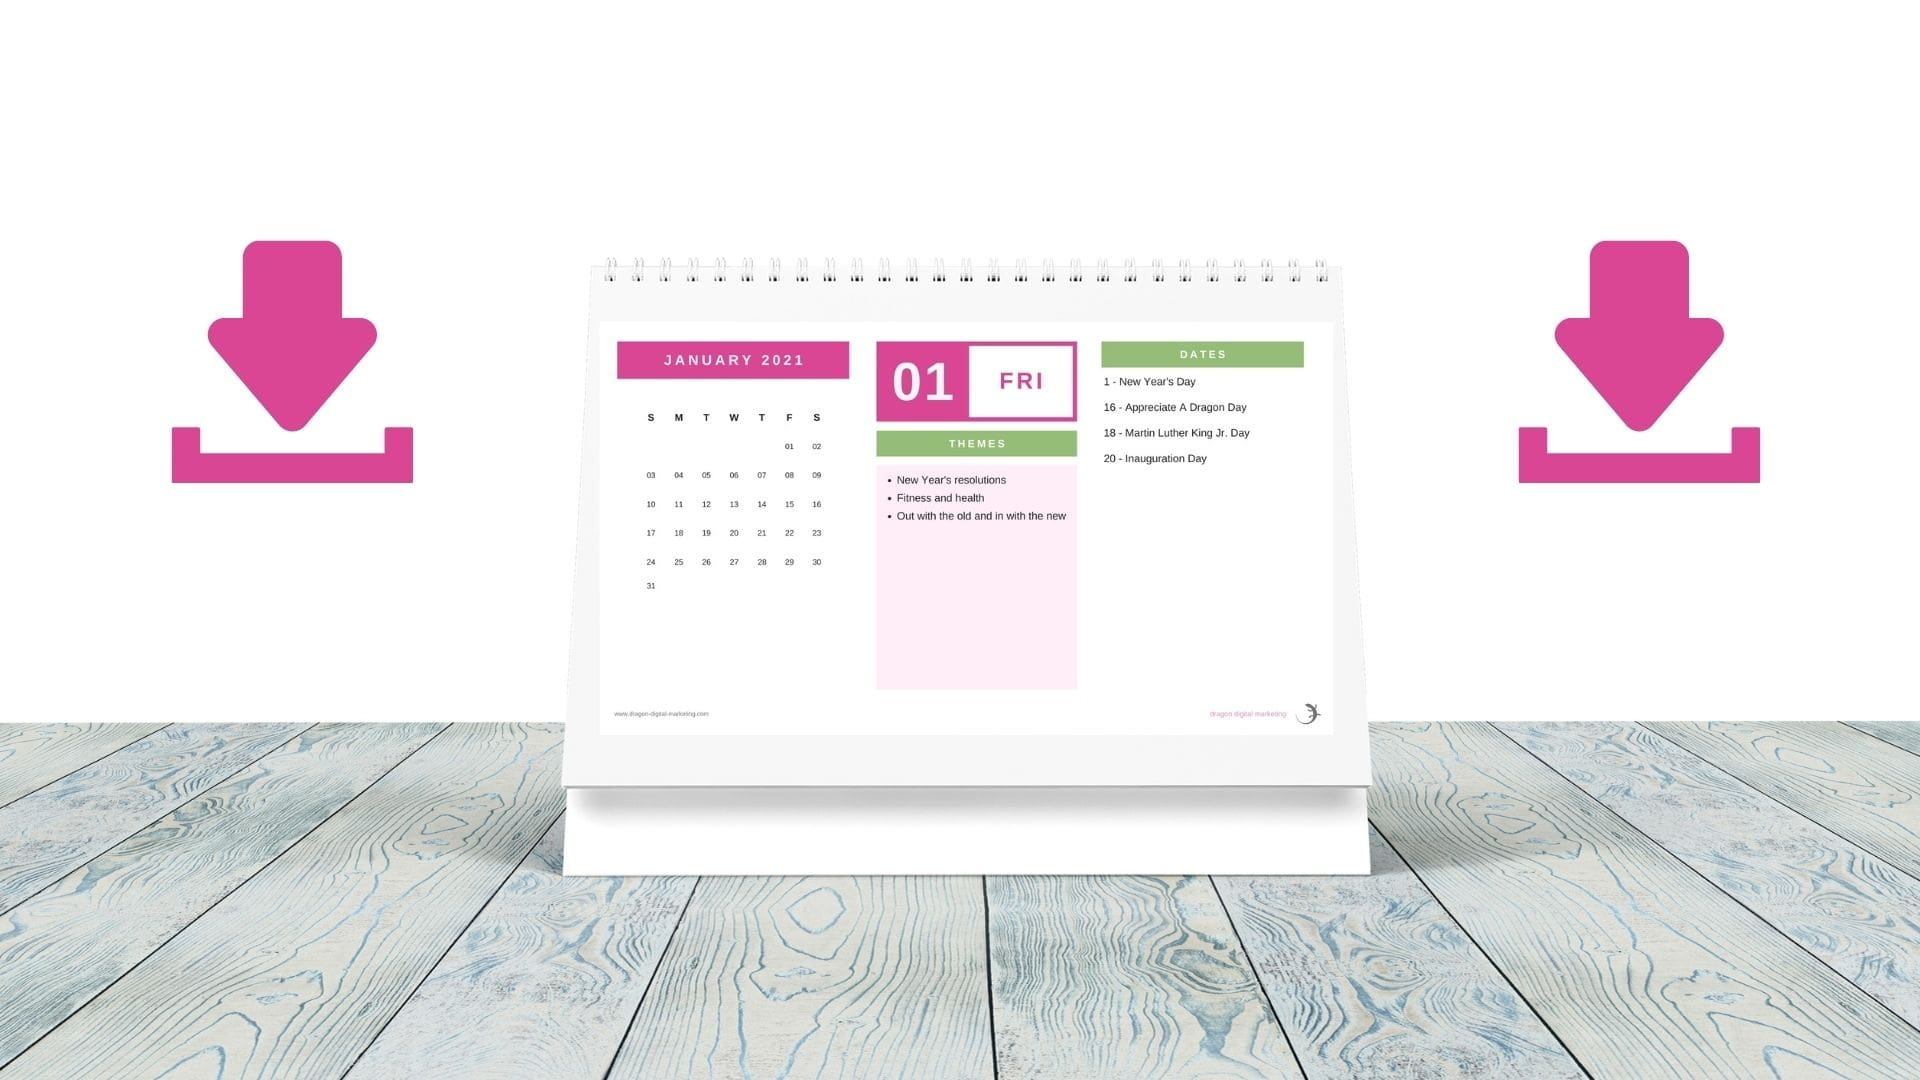 How to choose the right events for your email calendar